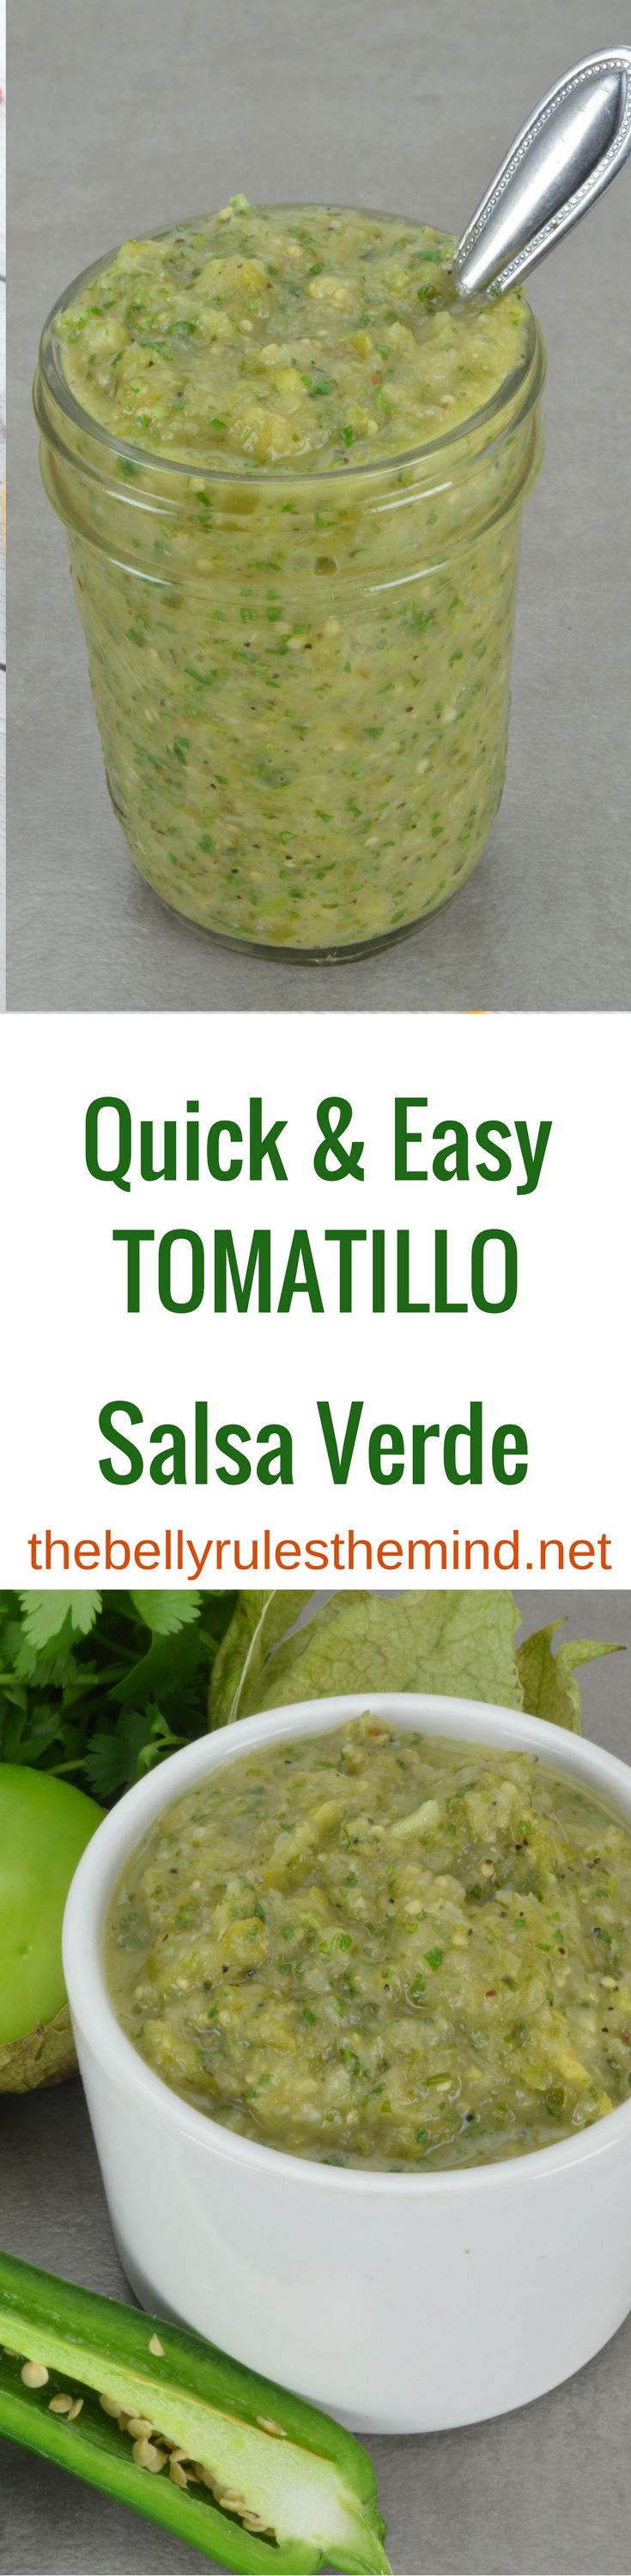 This Tomatillo Salsa Verde is one of my favorite recipes. EVER. It's so easy to make, packs a huge punch of tangy, zesty flavor and is so versatile, it can be used in countless dishes and recipes. It's also gluten free, vegetarian, dairy free and vegan!http://thebellyrulesthemind.net/2017/04/tomatillo-salsa-verde/ @bellyrulesdmind